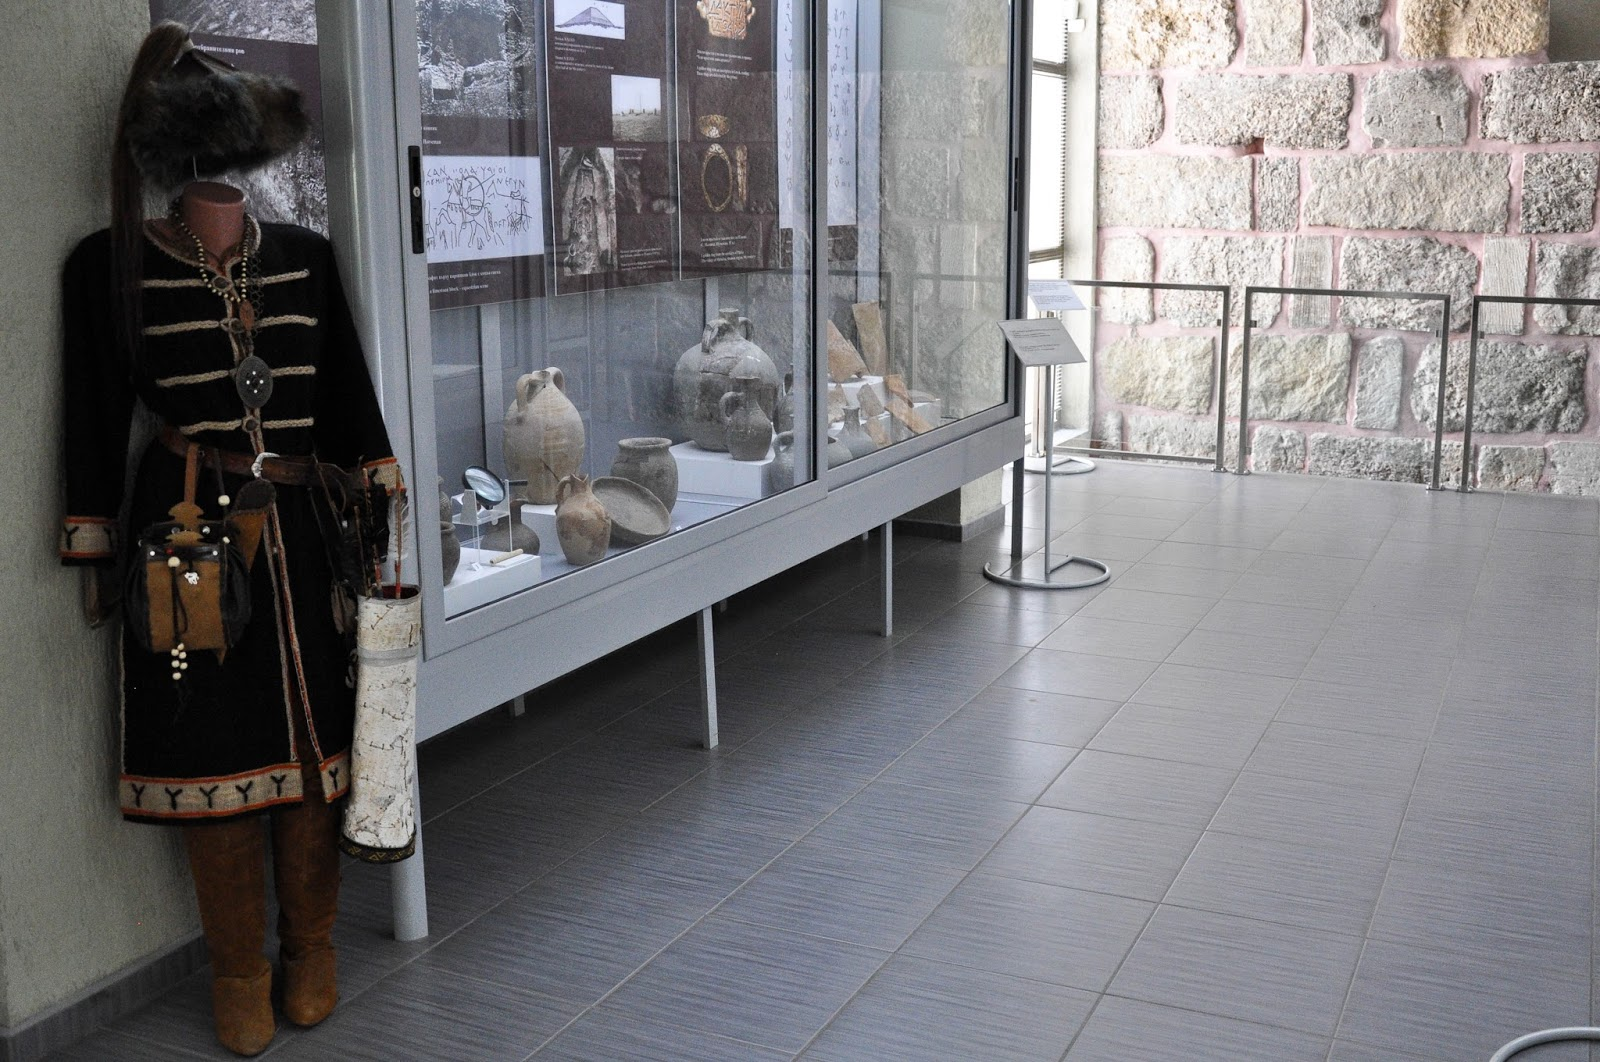 Inside the museum with the old wall with pink mortar visible in the background, Pliska, Bulgaria